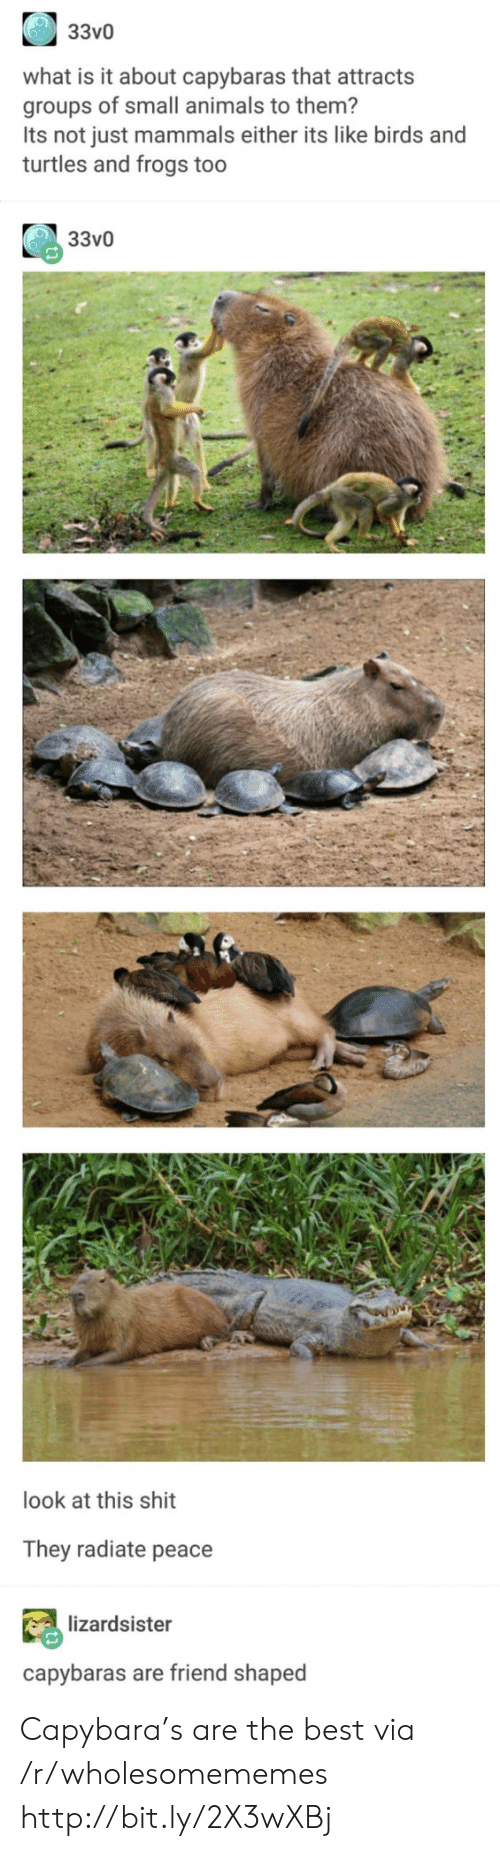 Animals, Shit, and Best: 33v0  what is it about capybaras that attracts  groups of small animals to them?  Its not just mammals either its like birds and  turtles and frogs too  33v0  look at this shit  They radiate peace  lizardsister  capybaras are friend shaped Capybara's are the best via /r/wholesomememes http://bit.ly/2X3wXBj